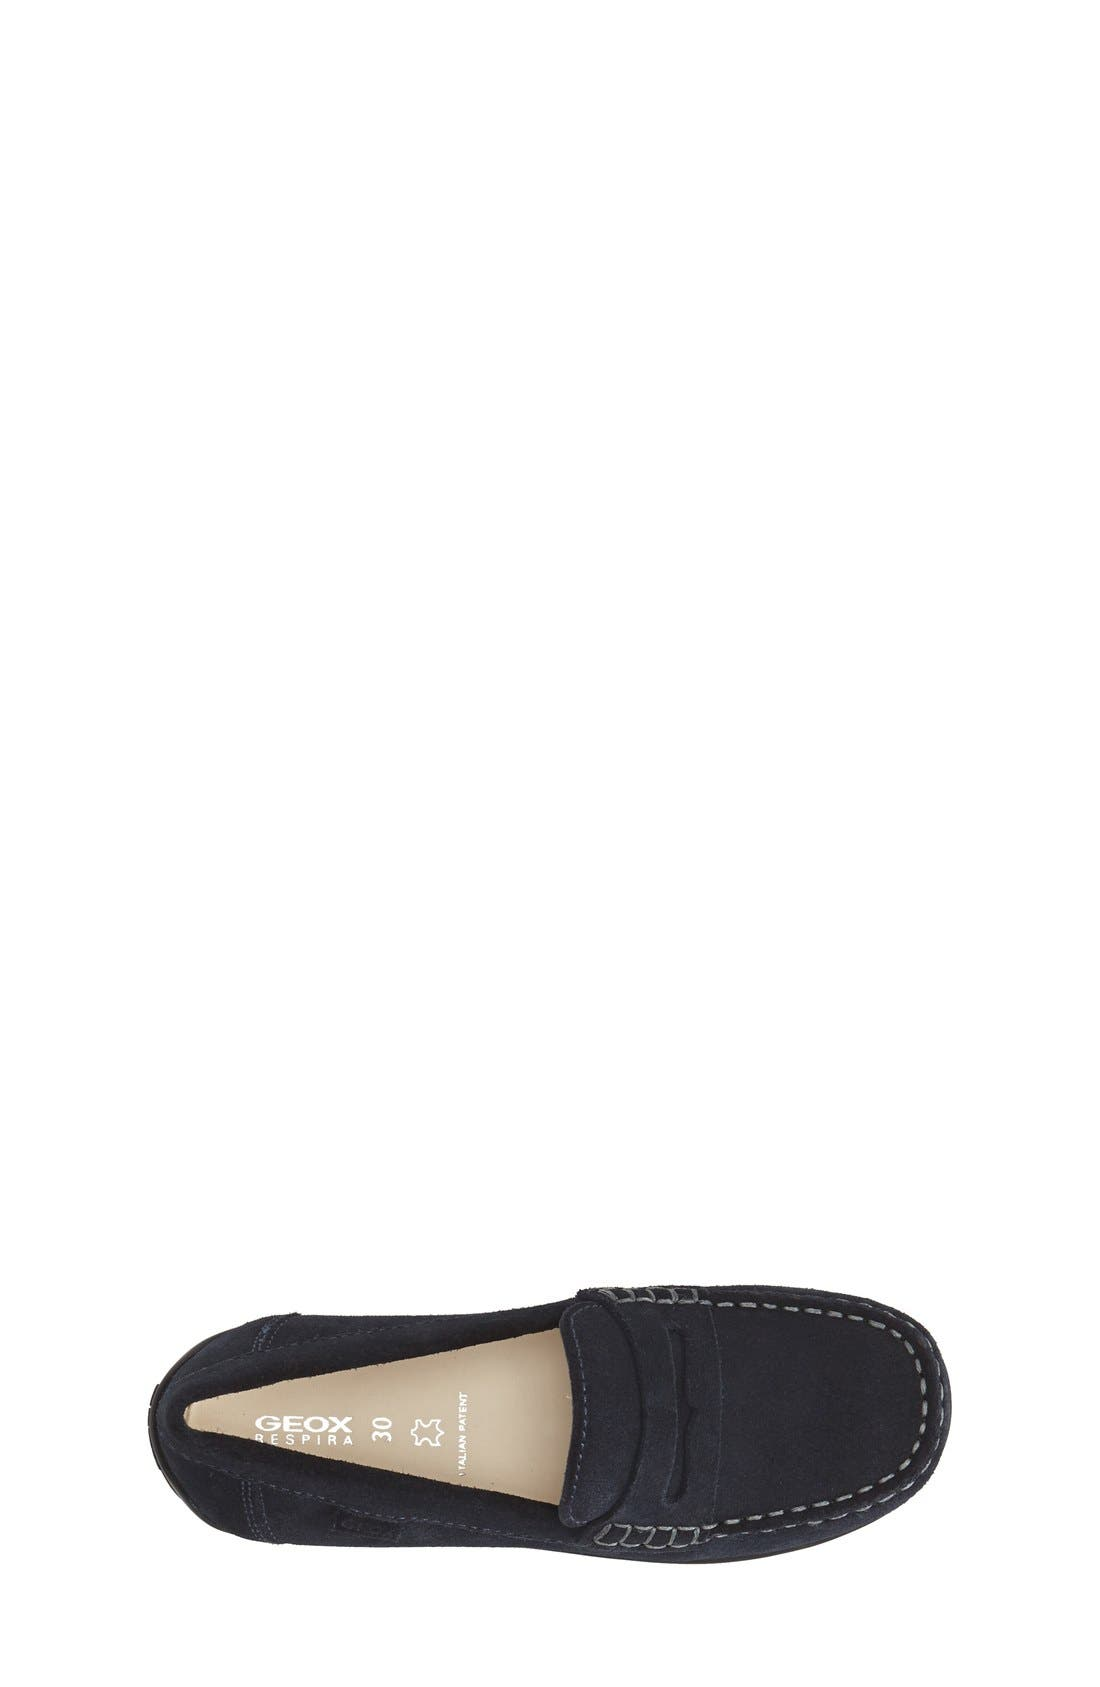 'Fast' Penny Loafer,                             Alternate thumbnail 3, color,                             Navy